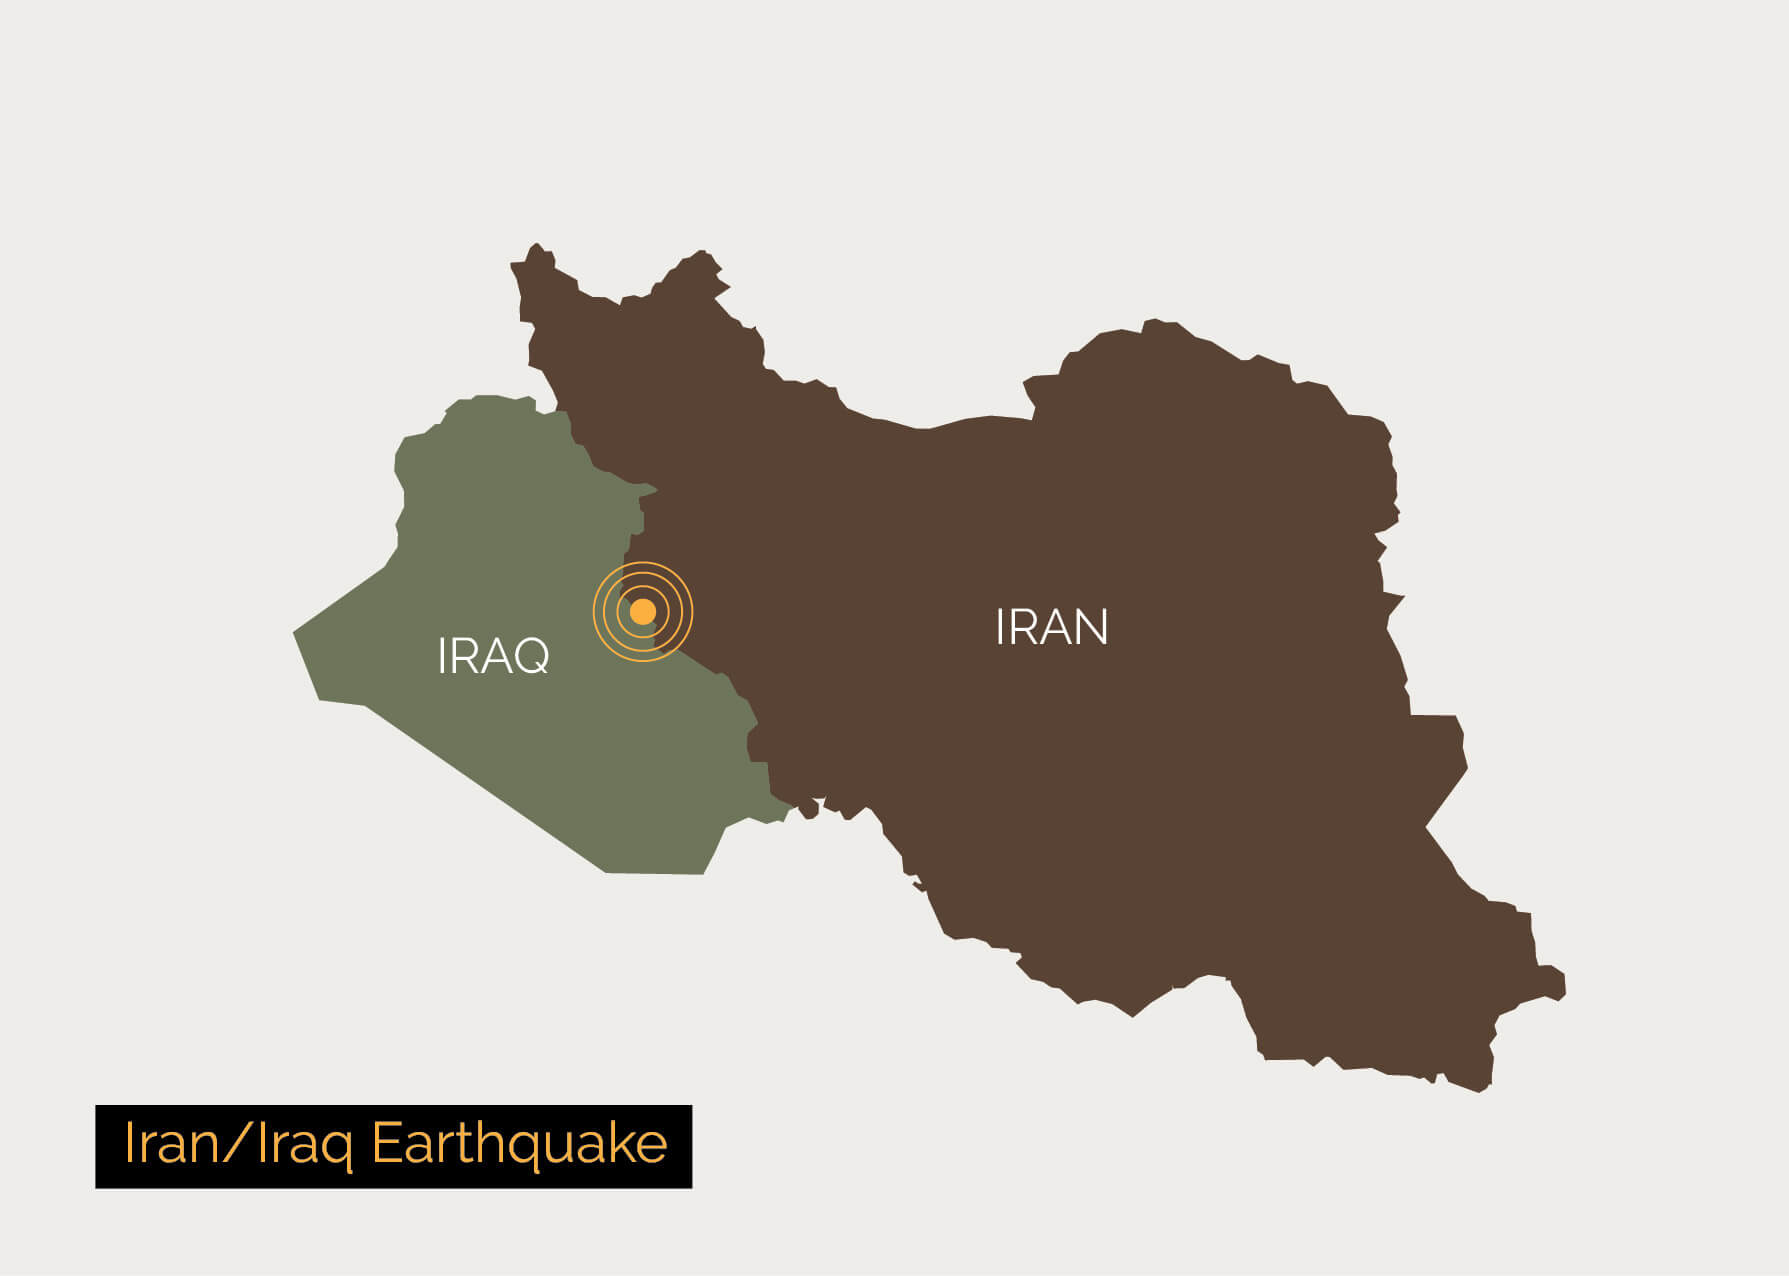 iraqn_iraq earthquake-01